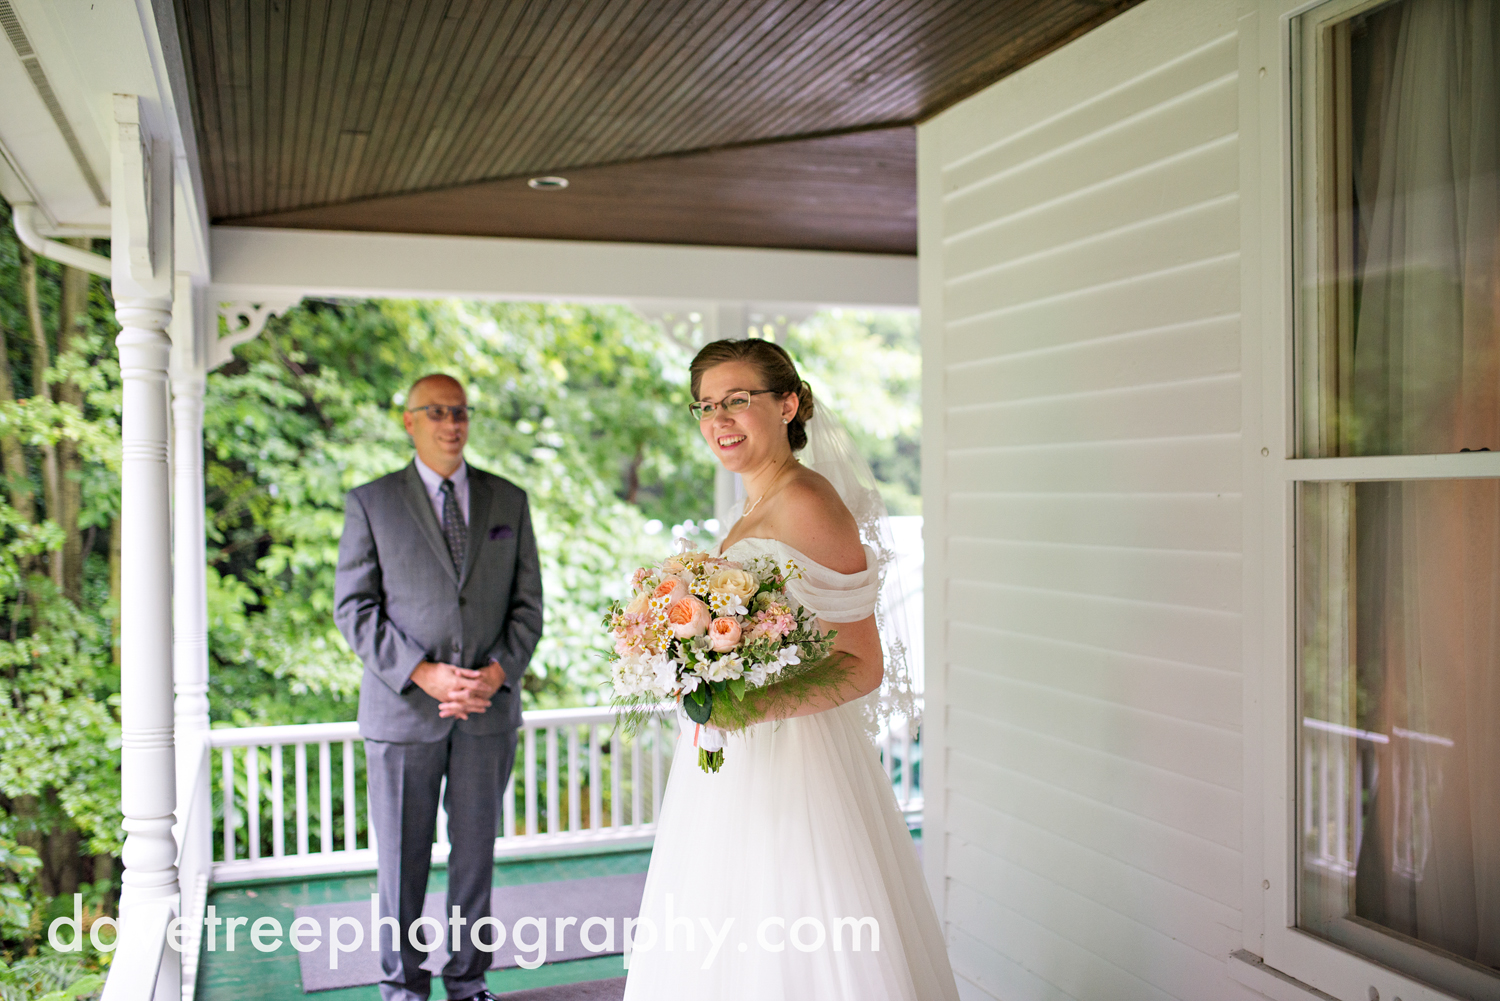 grand_haven_wedding_photographer_weaver_house_wedding_154.jpg